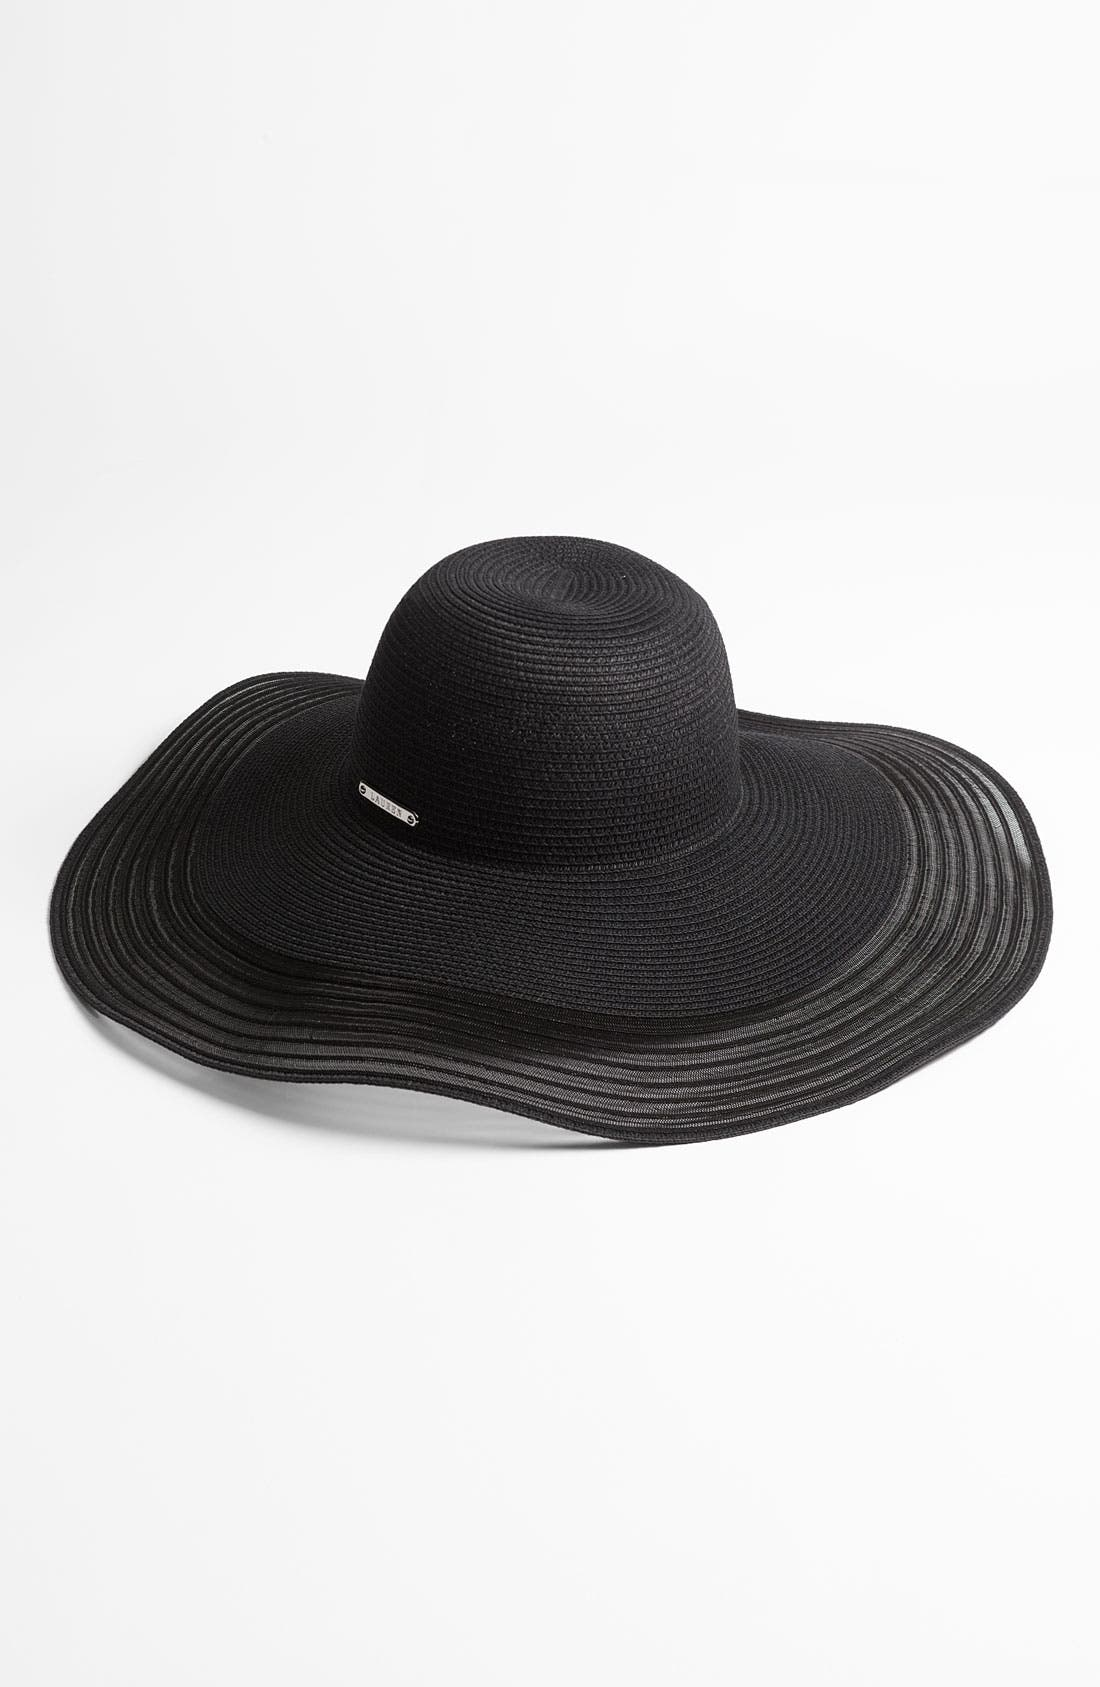 Main Image - Lauren Ralph Lauren Straw & Sheer Floppy Hat